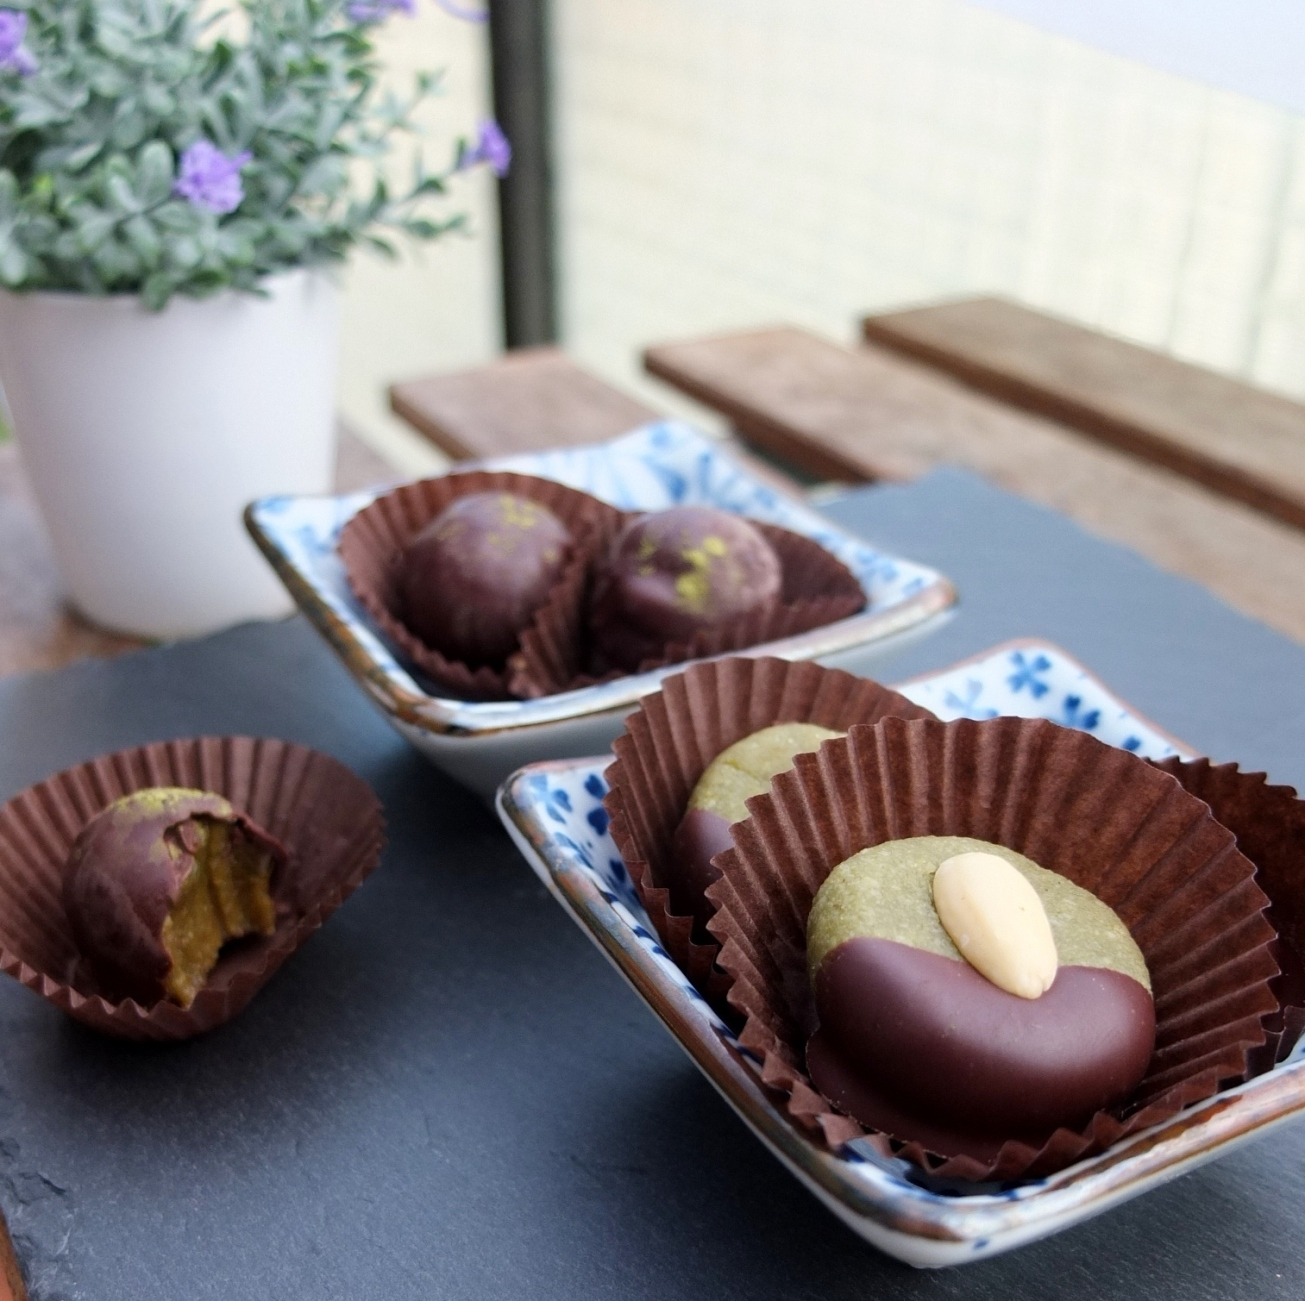 Healthier chocolate-covered matcha marzipans and date caramels